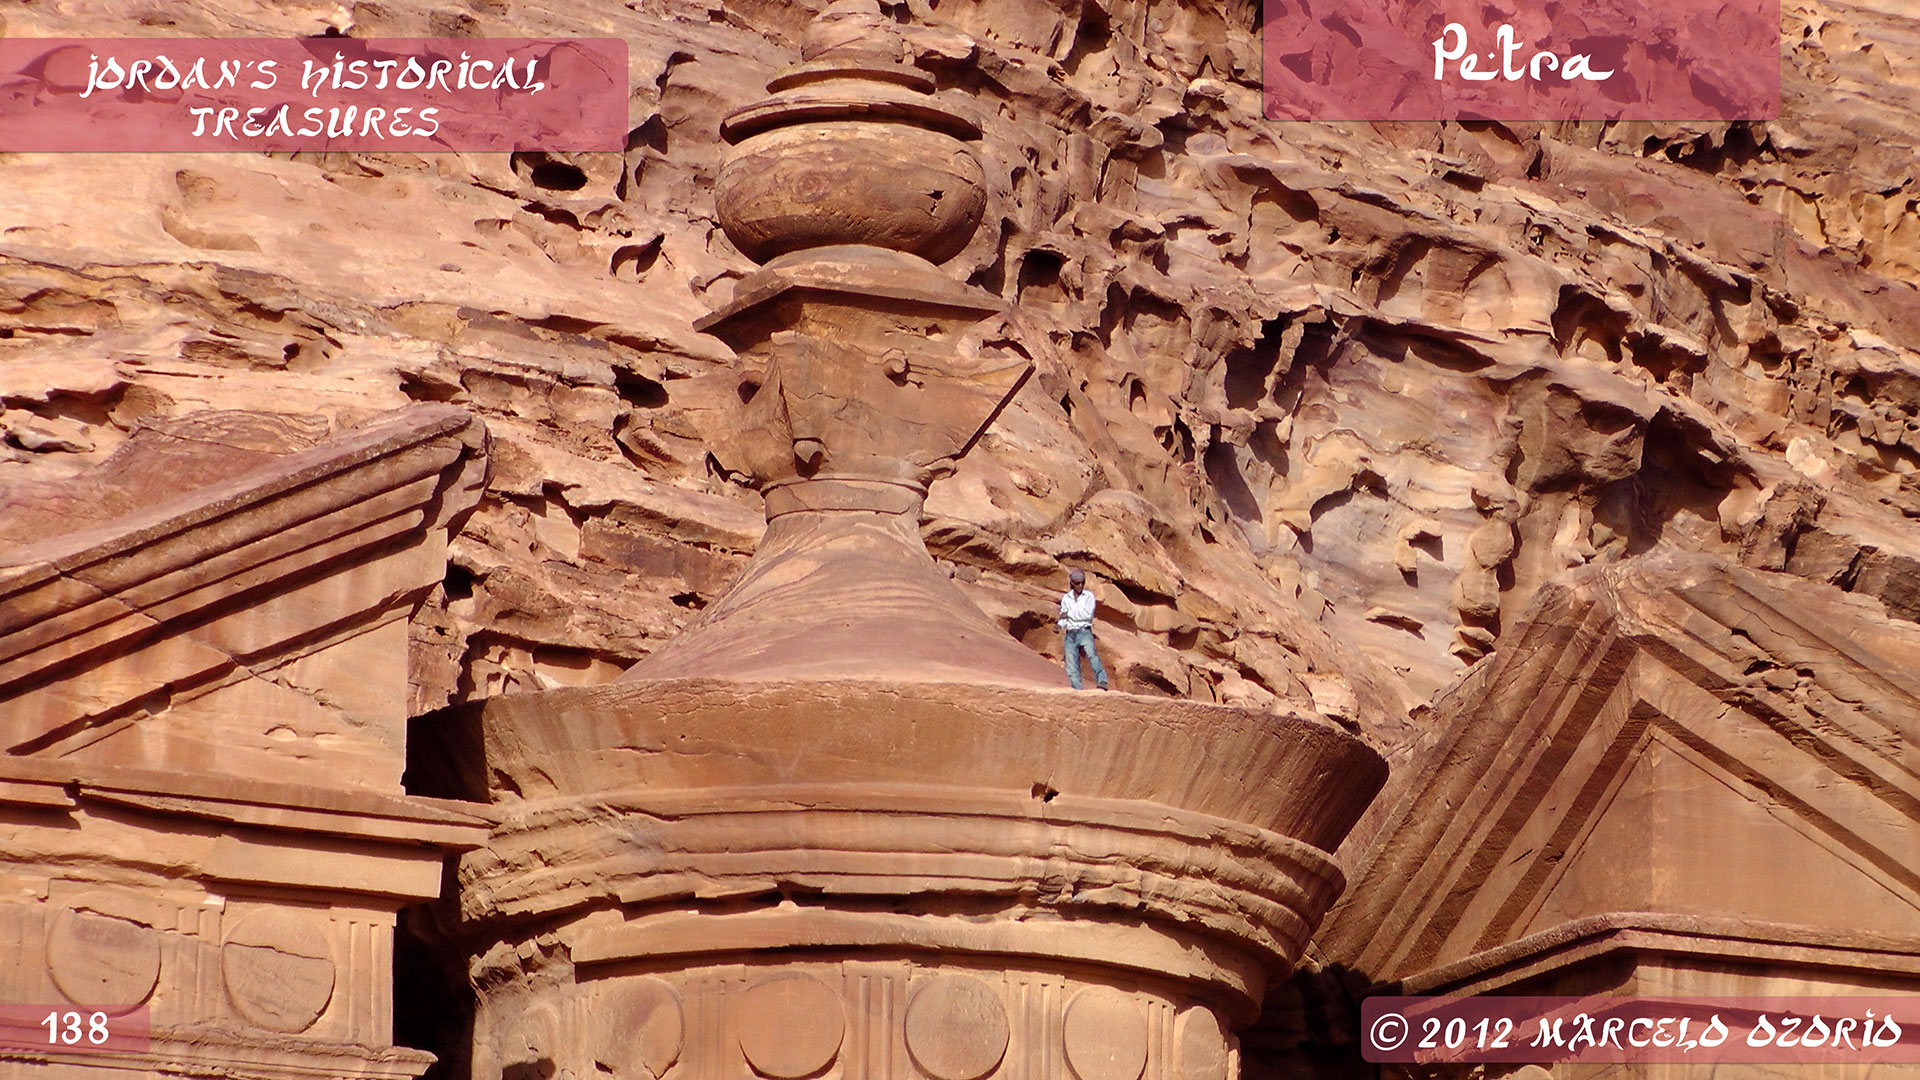 Petra Archaeological City Jordan 58 - The Astonishing Treasure at Petra - Jordan